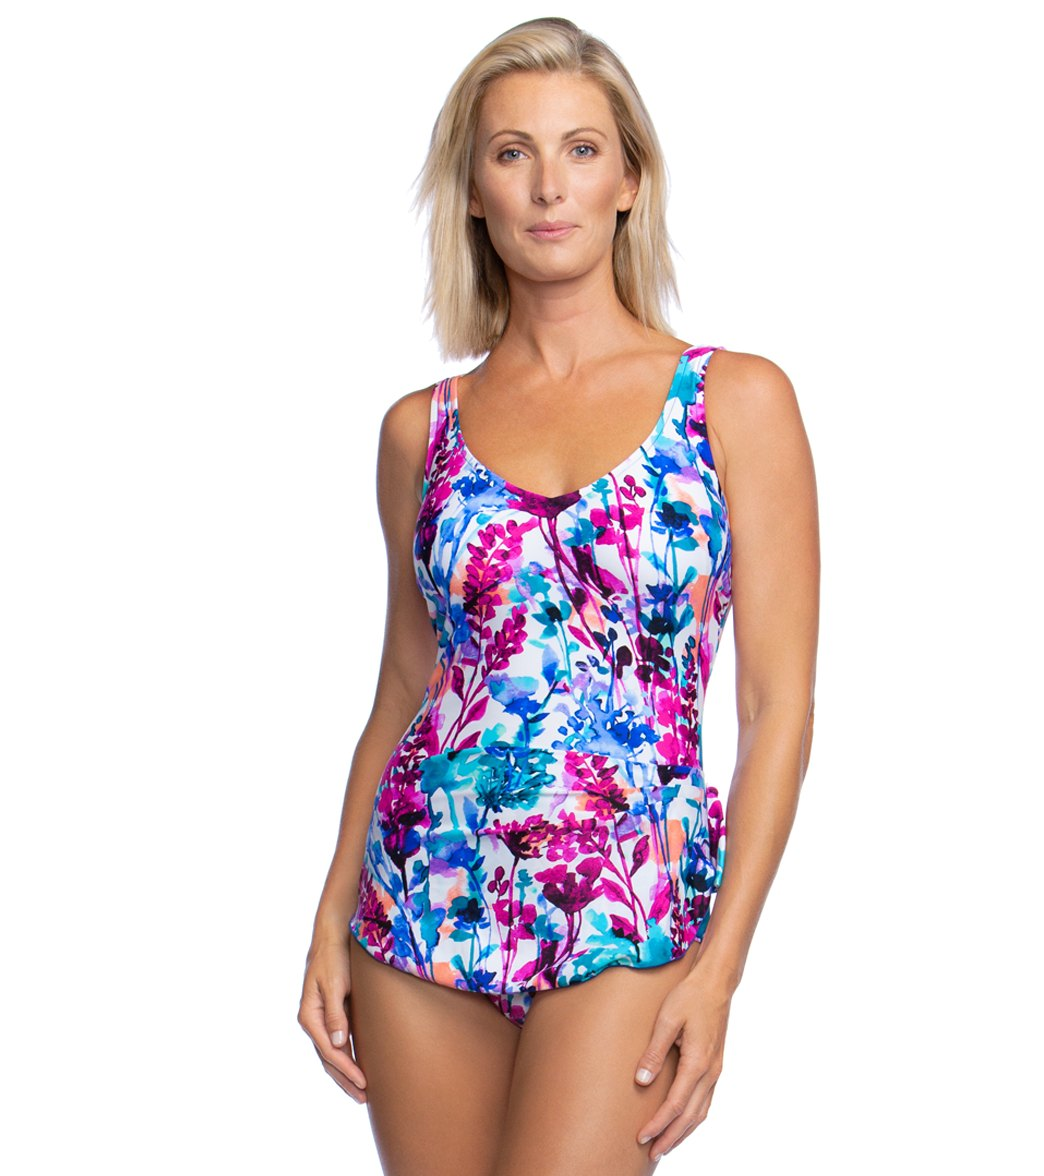 7e72f16f06 Maxine Parisian Garden Sarong One Piece Swimsuit at SwimOutlet.com - Free  Shipping